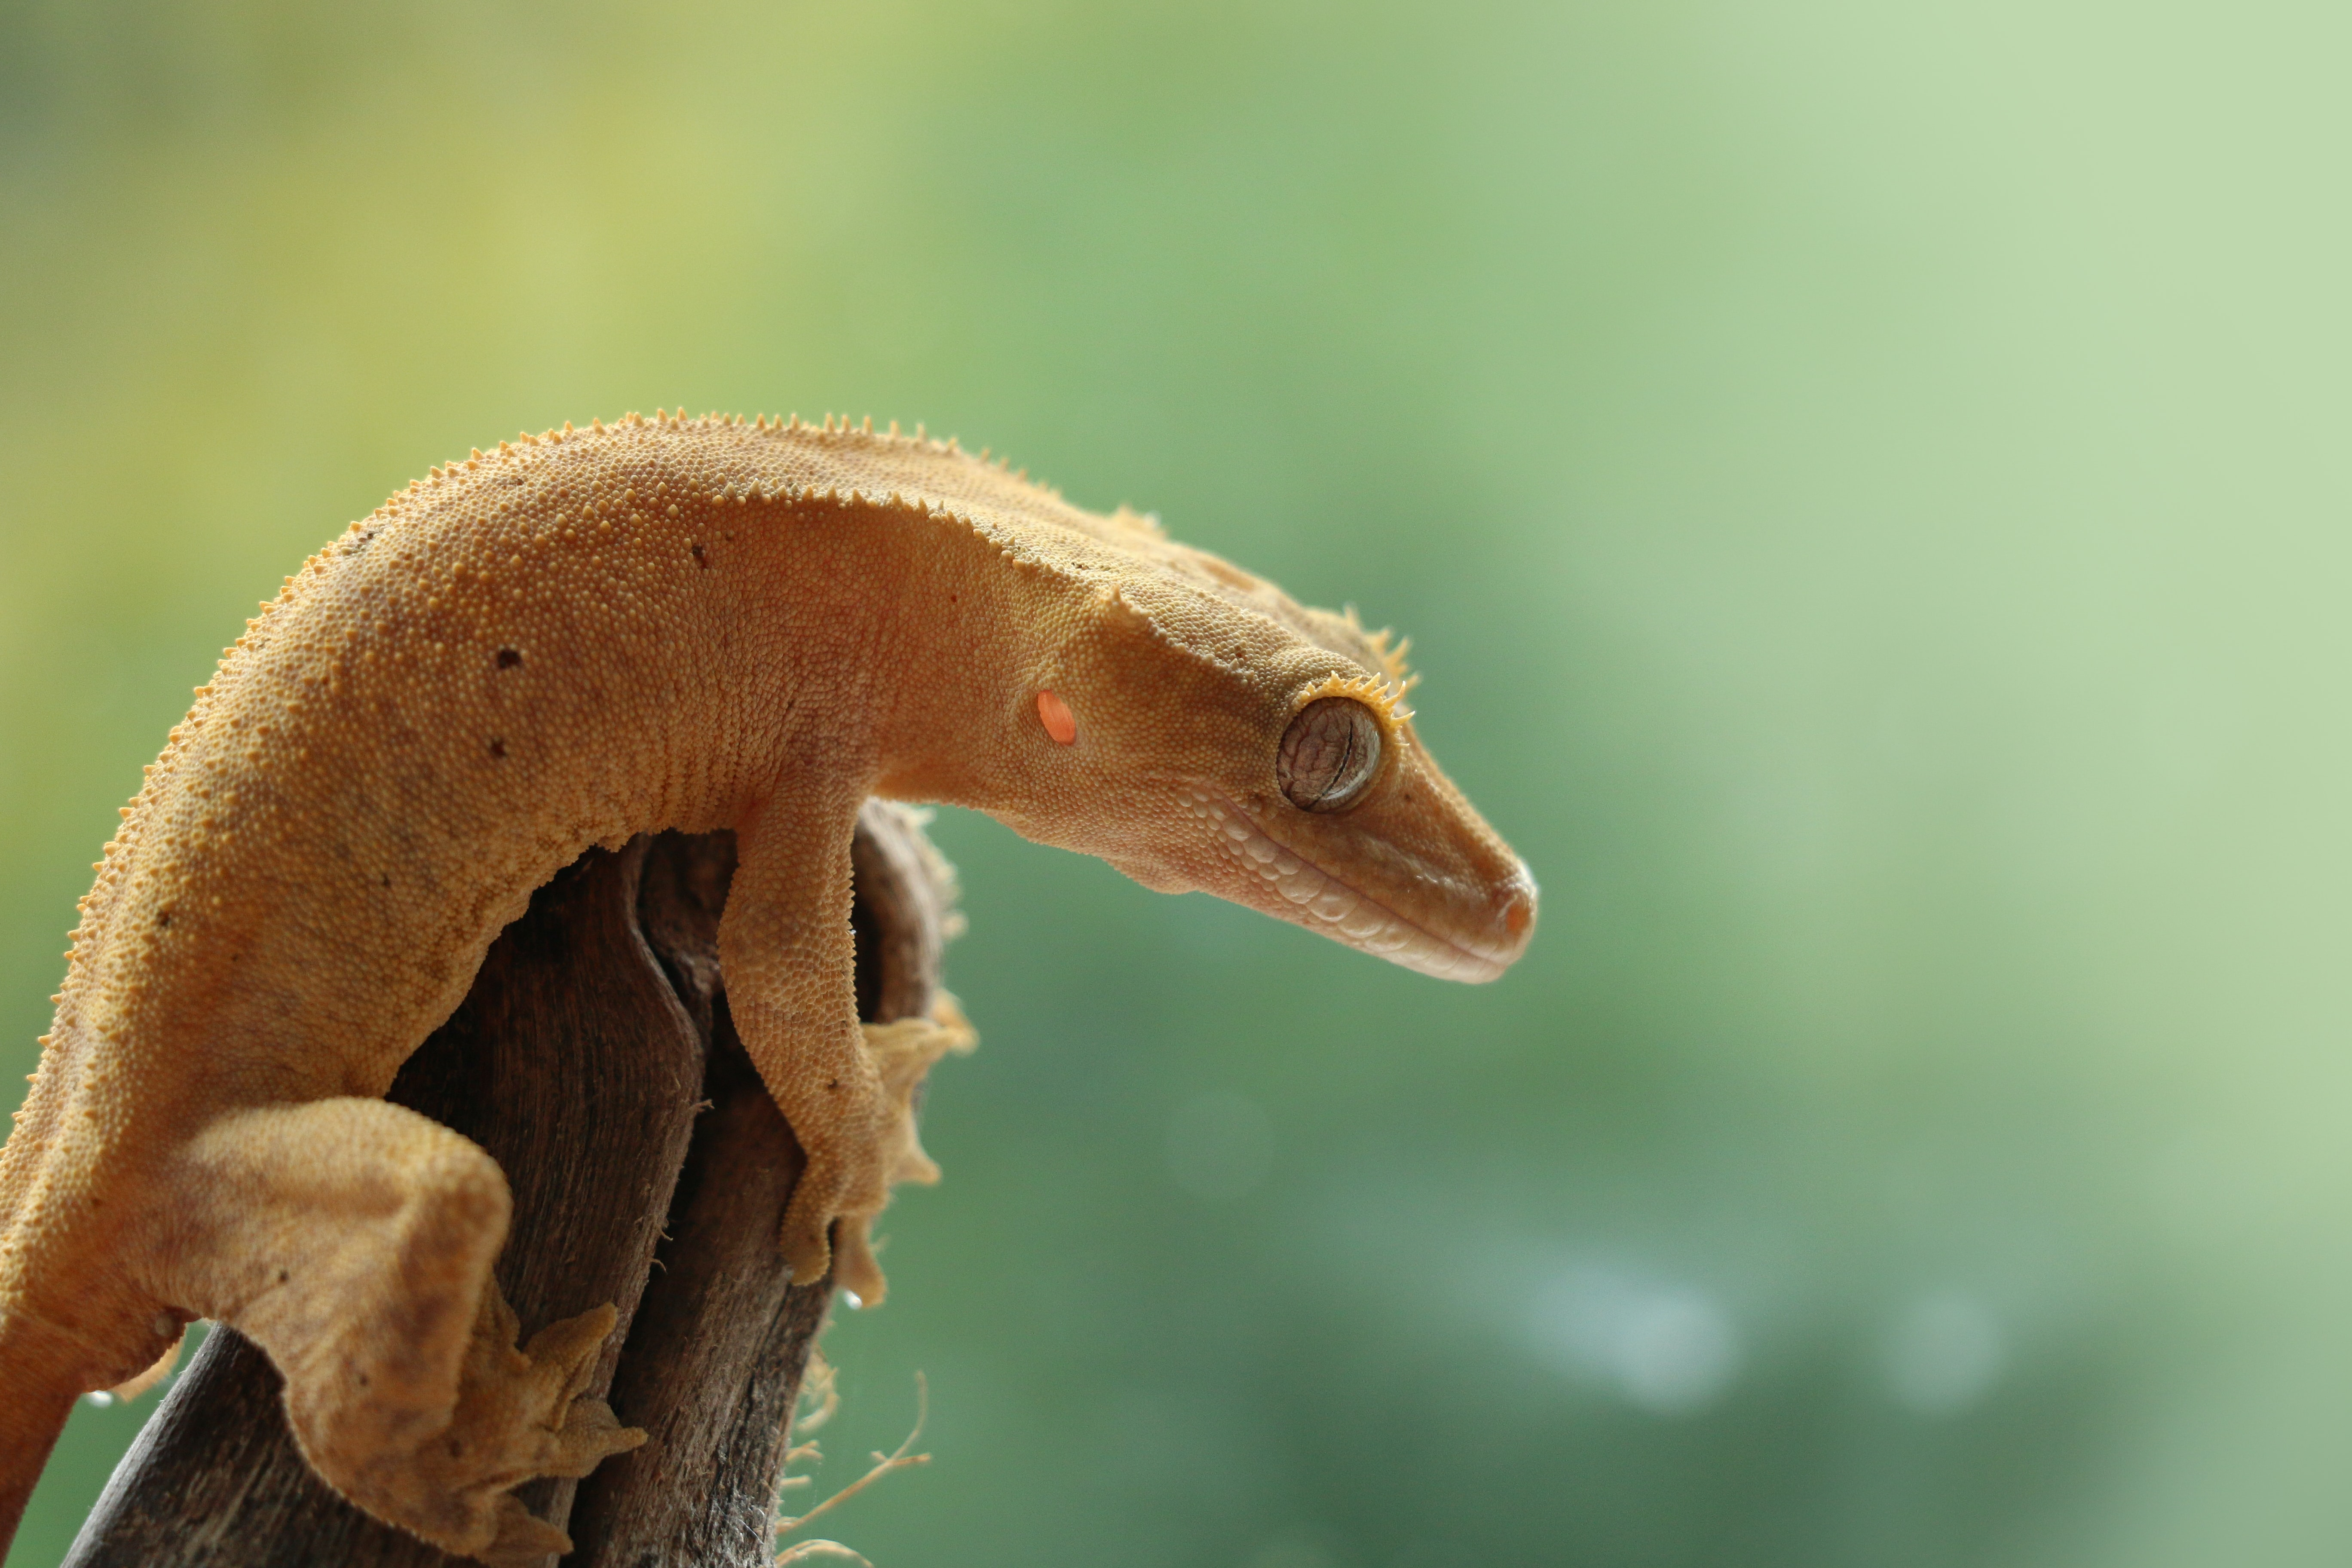 focused photo of a brown lizard